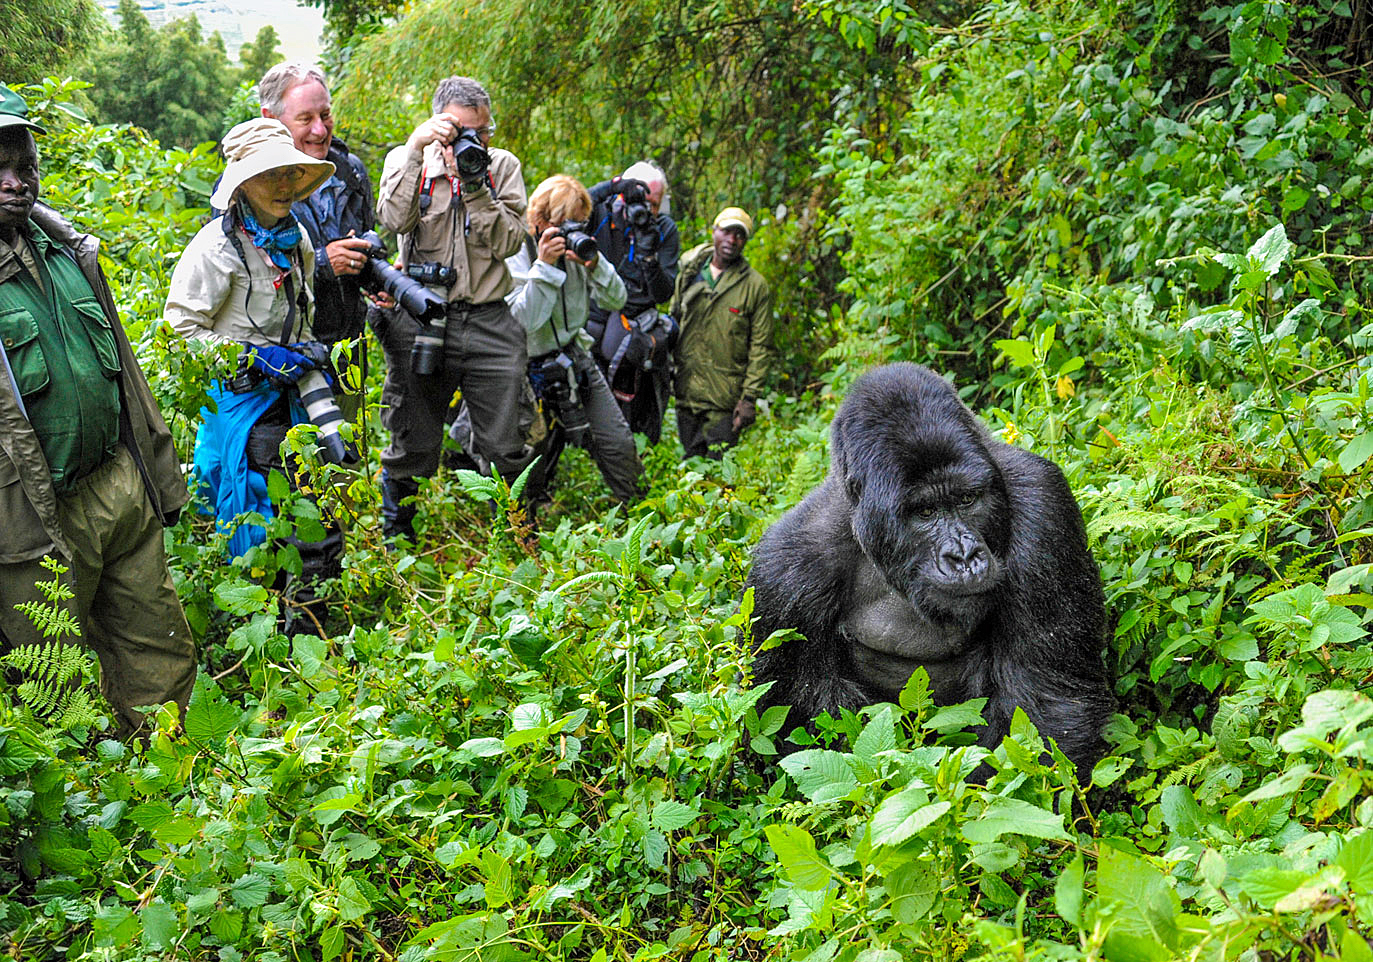 Wild Planet Adventures has just acquired a rare four hour Gorilla Habituation Permit in Uganda, quadrupling the amount of time travelers can spend with the gorillas.